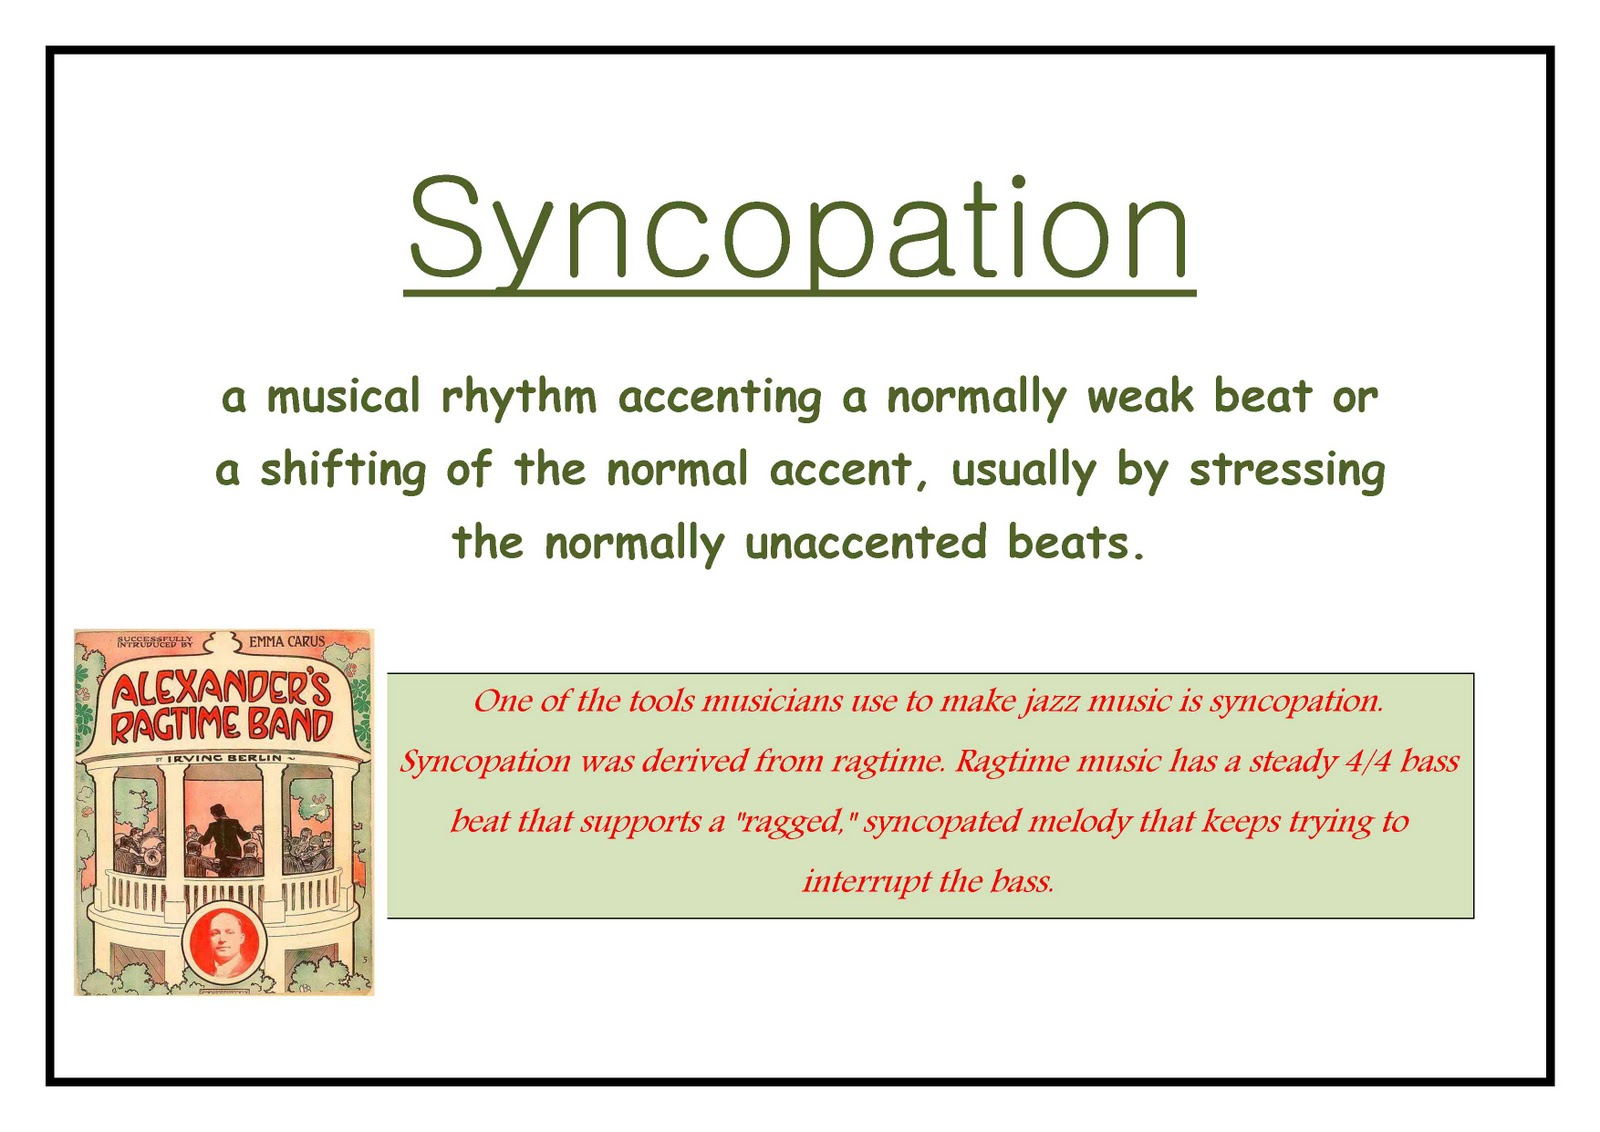 an analysis of improvisation in music Improvisation north indian classical music is built on melodies which are varied by improvisation [improvisation: the creation of a musical passage by a musician whilst it is being performed.